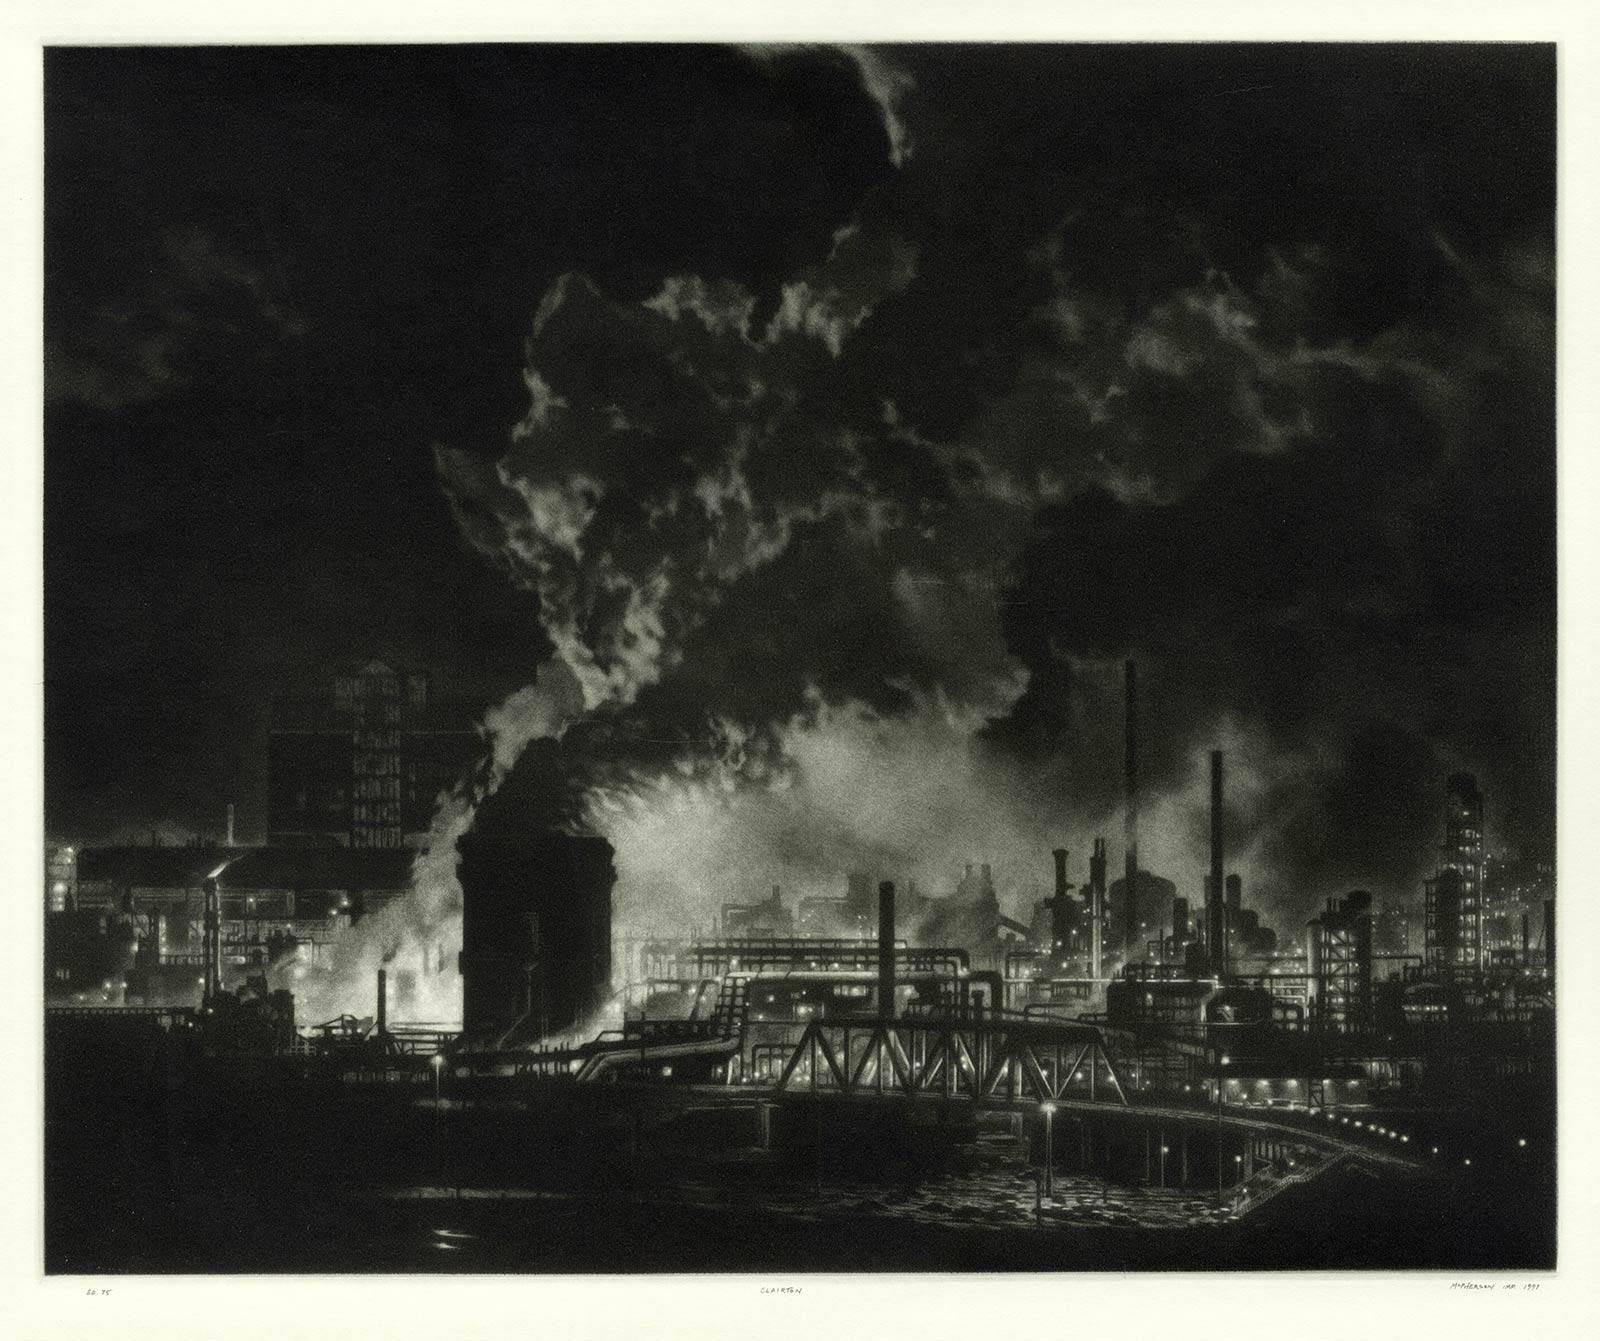 Clairton (night view of US Steel Clairton coke plant, largest in America)